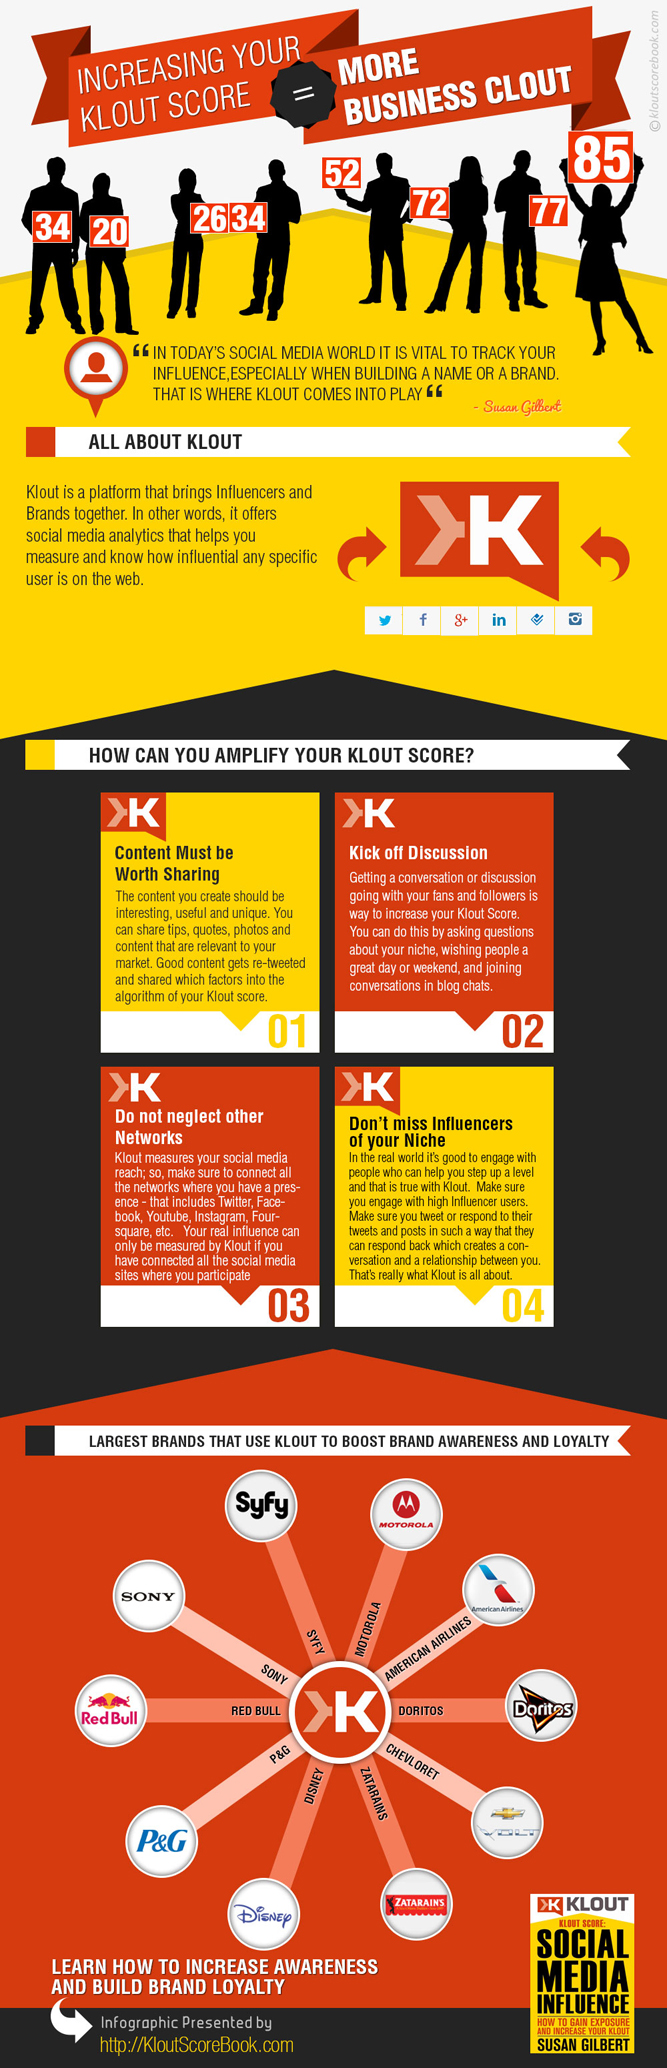 How to Increase Klout Score [Infographic]